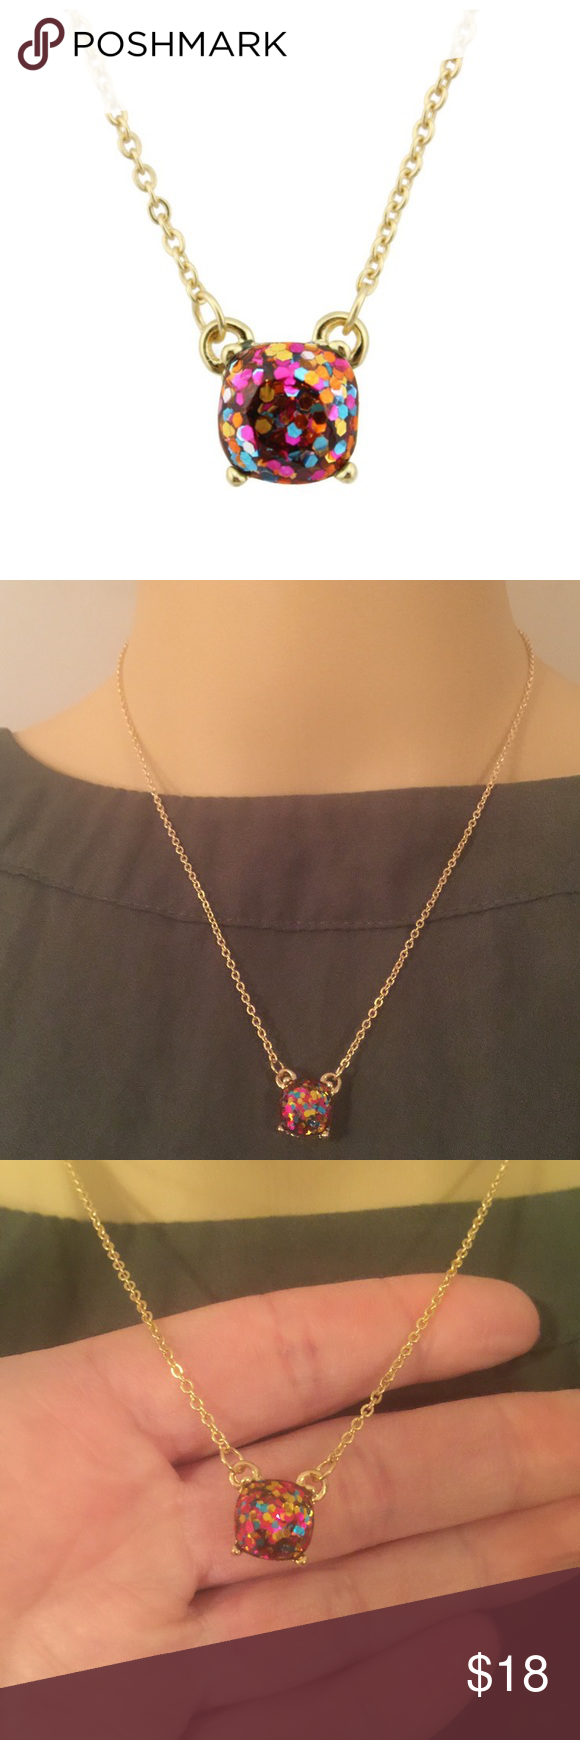 "Rainbow glitter necklace (new) Glitter stone with gold plated chain, also selling matching earrings. Chain measures 18"" with a 2""extender Jewelry Necklaces"